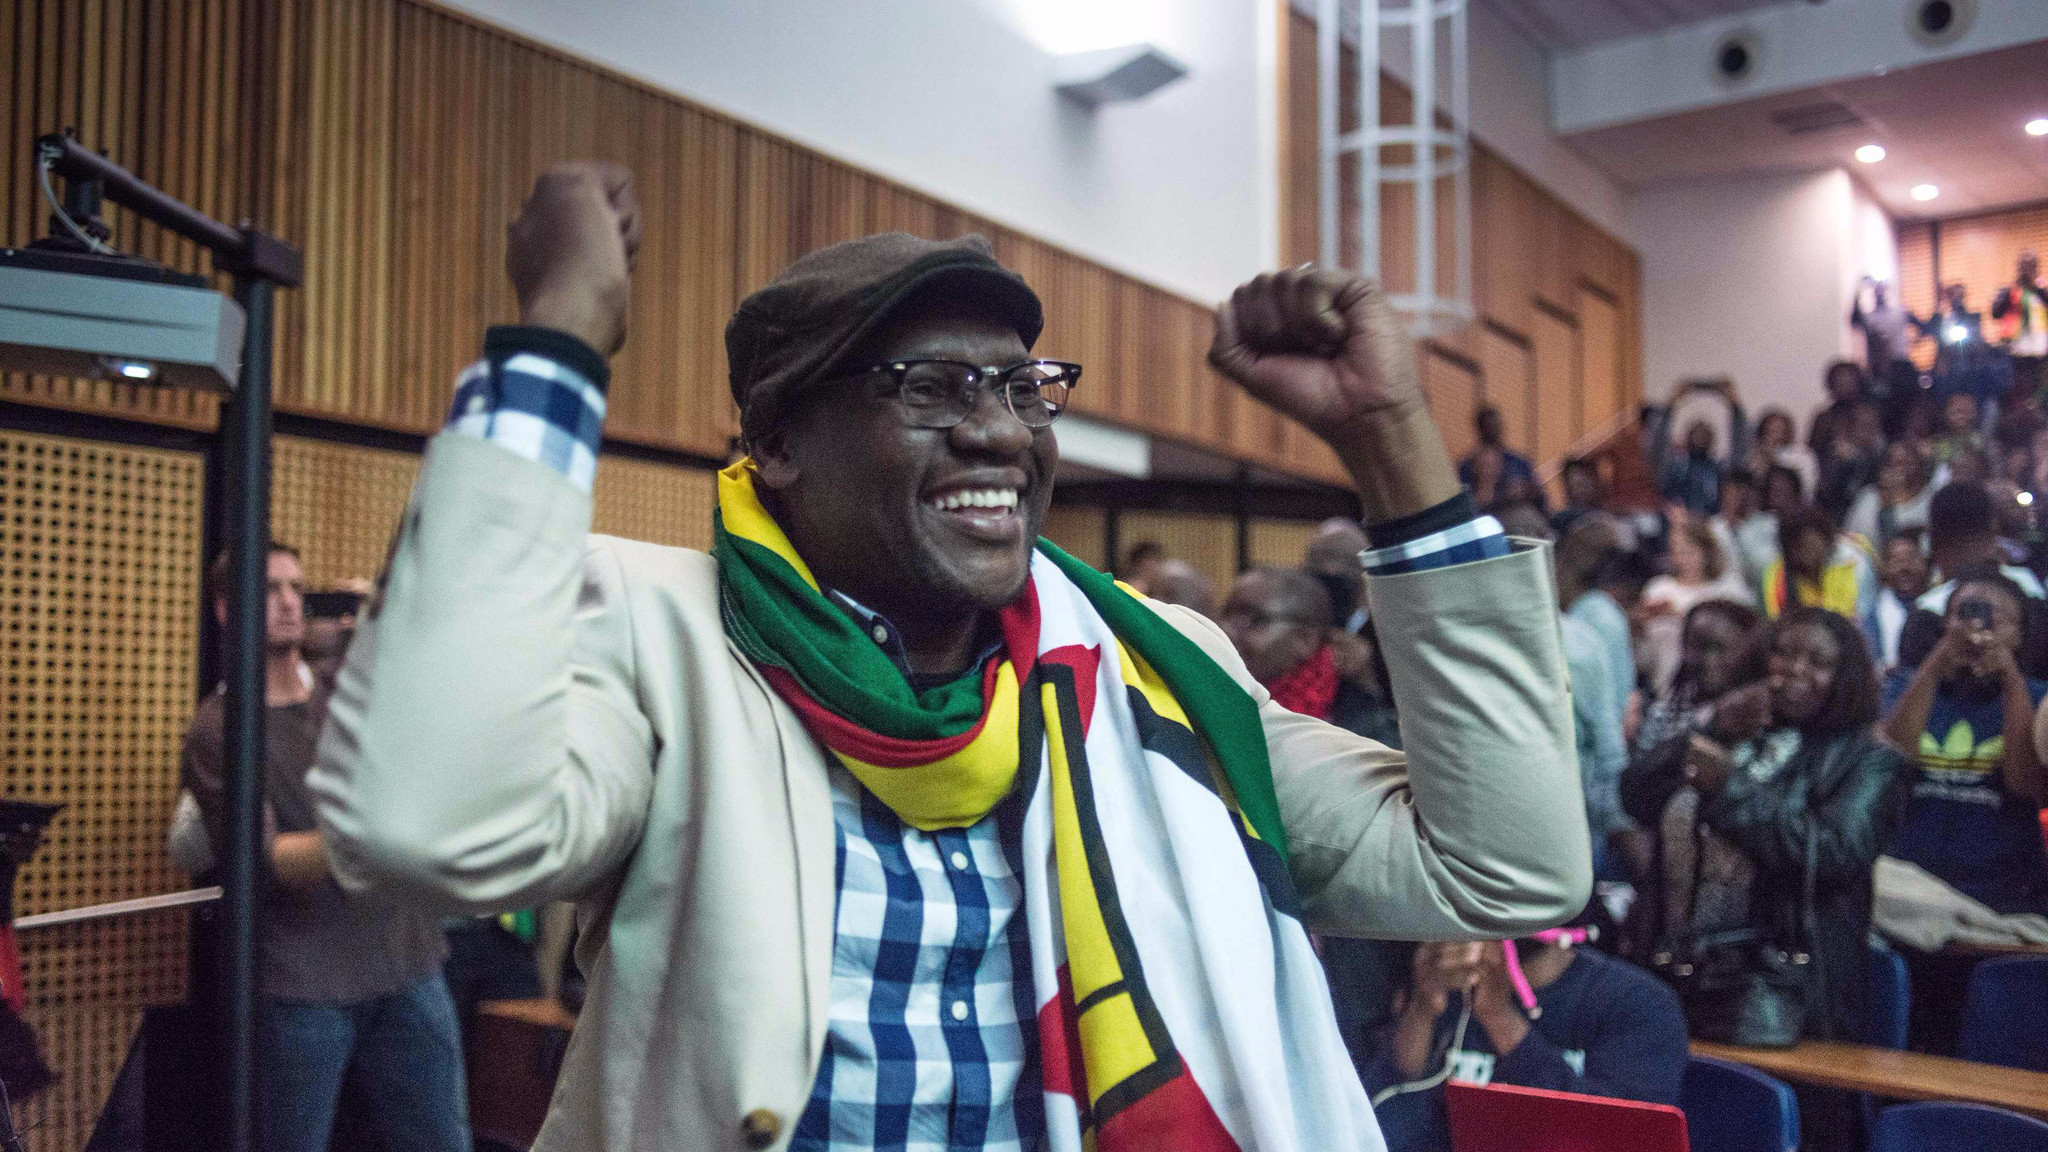 Zimbabwean Pastor Evan Mawarire gestures after addressing students during a lecture at the University of Witwatersrand in Johannesburg, on July 28, 2016.